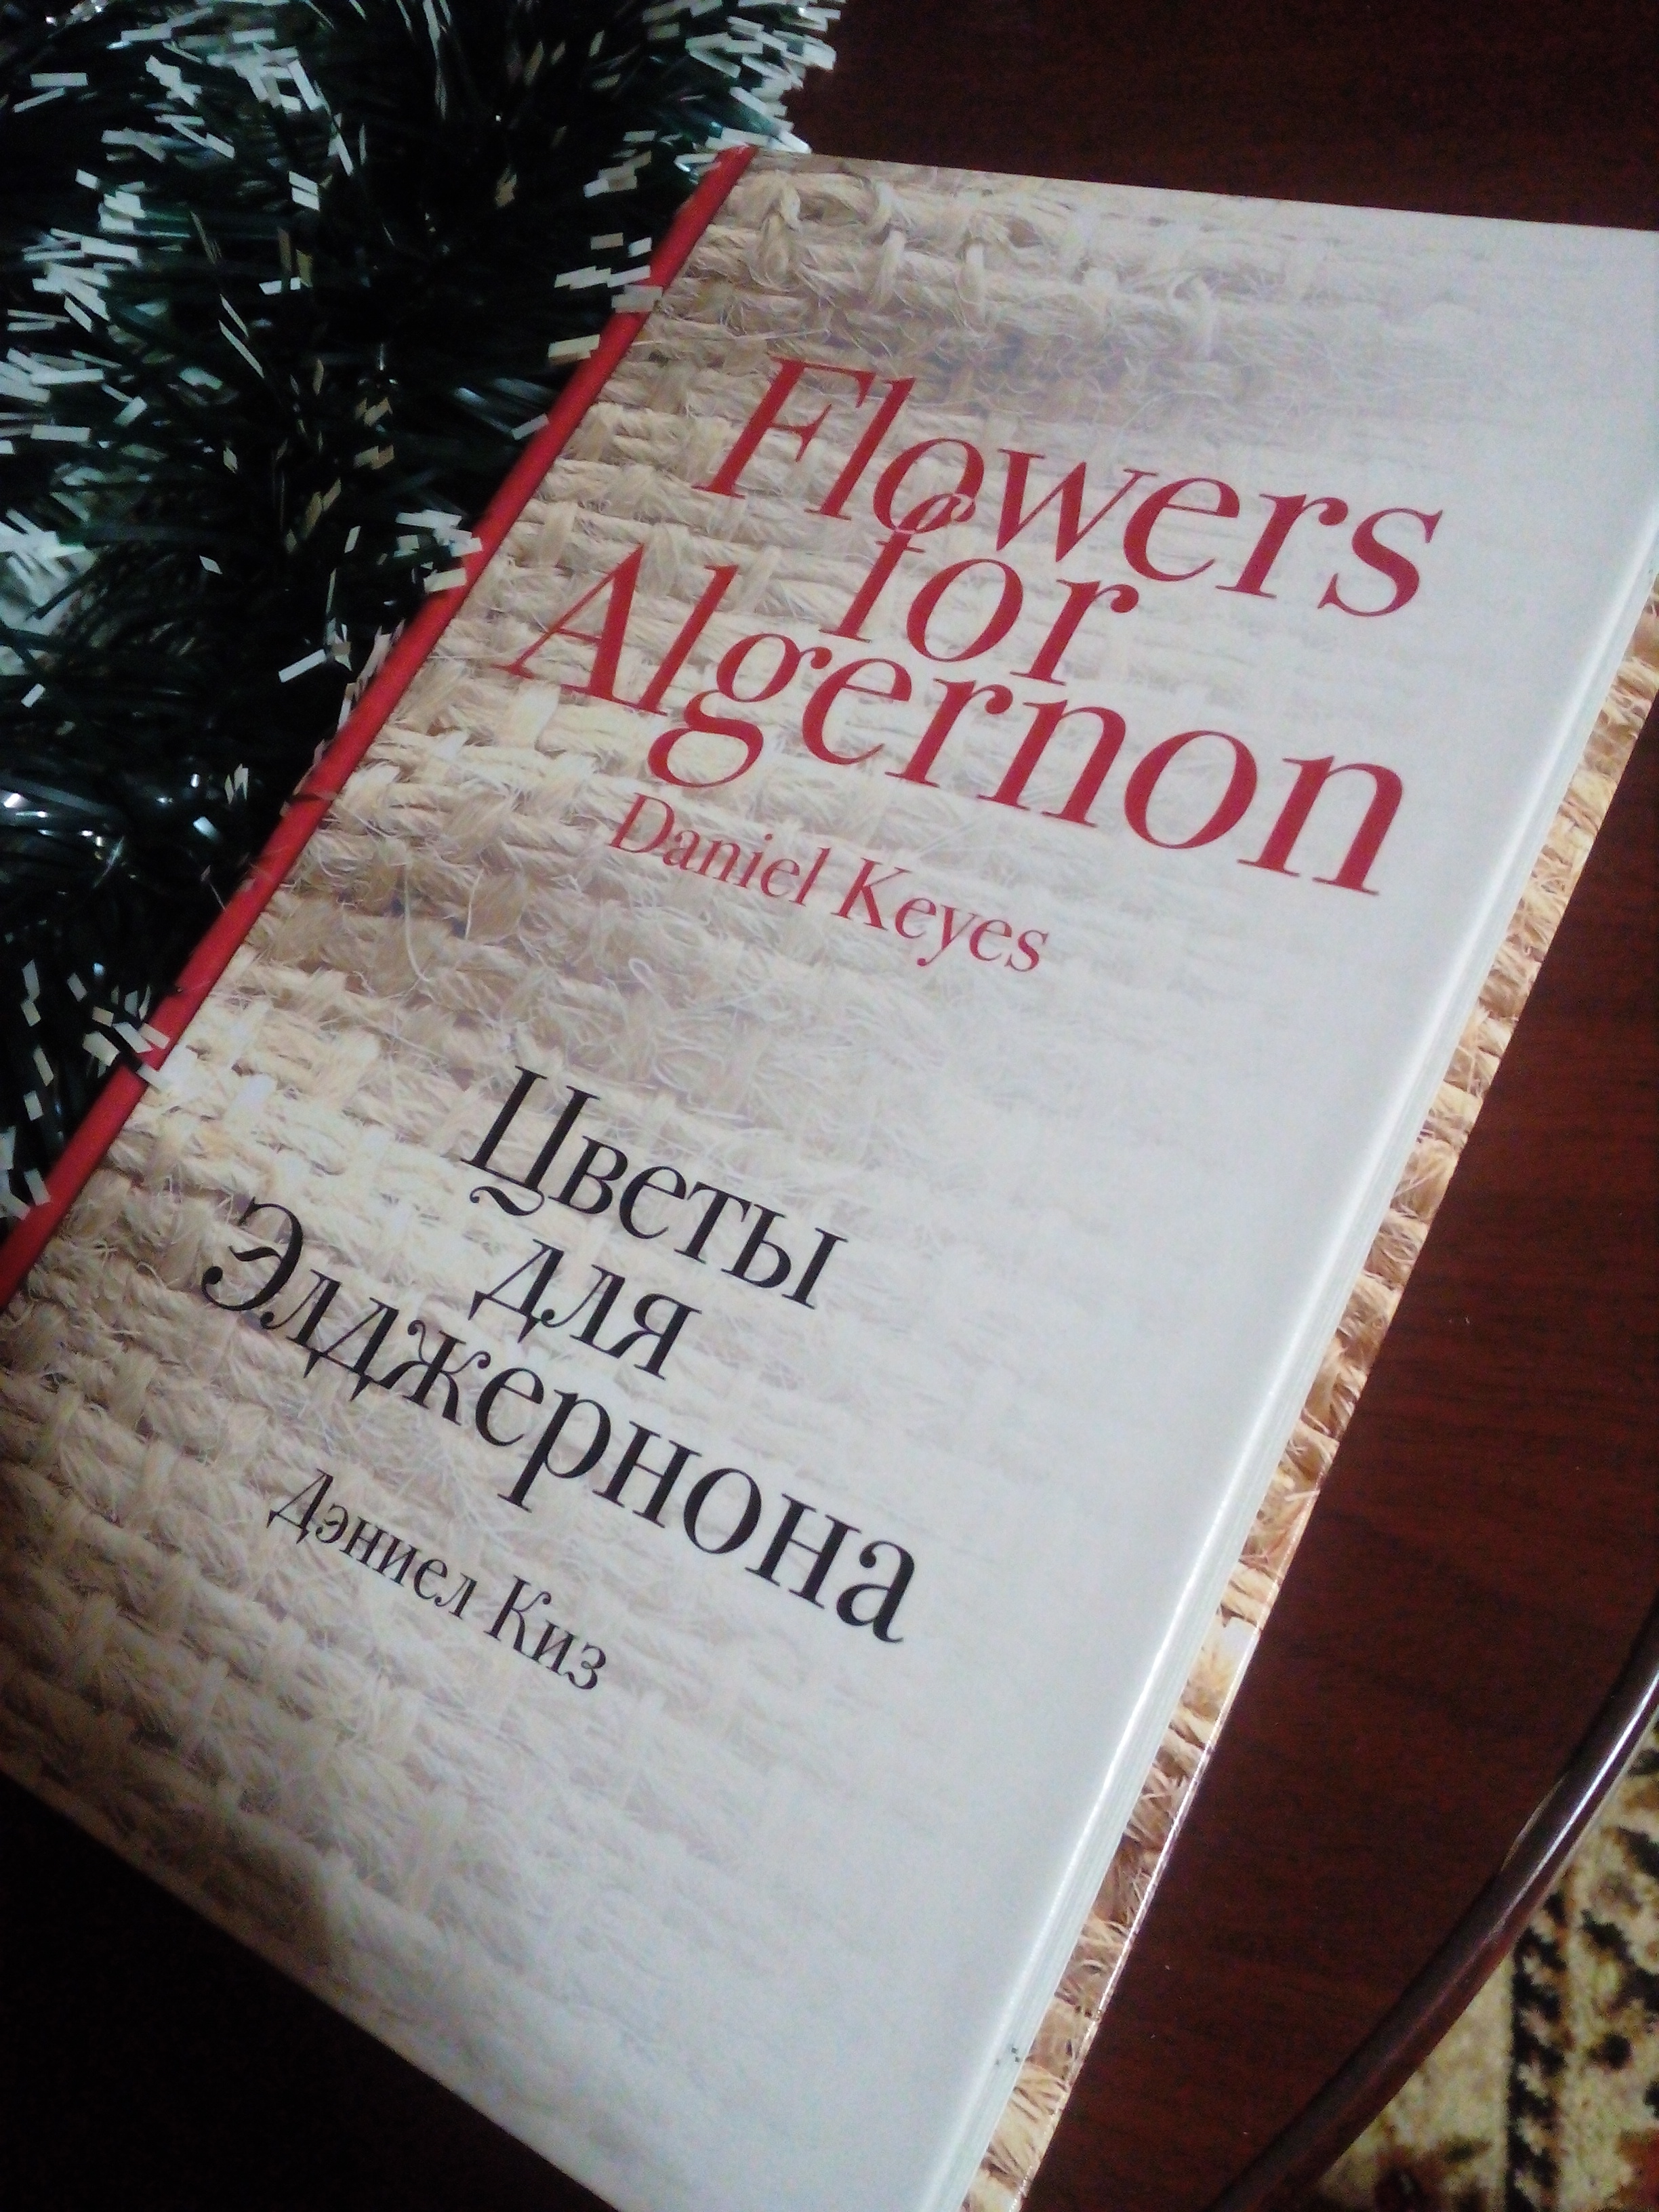 analyzing the ethical and moral themes of flowers for algernon by daniel keys Departments 2 general stats by the numbers 3 speak letters to the editor 4 along the colonnade baccalaureate and commencement, residential life, retirees, a new cabin.